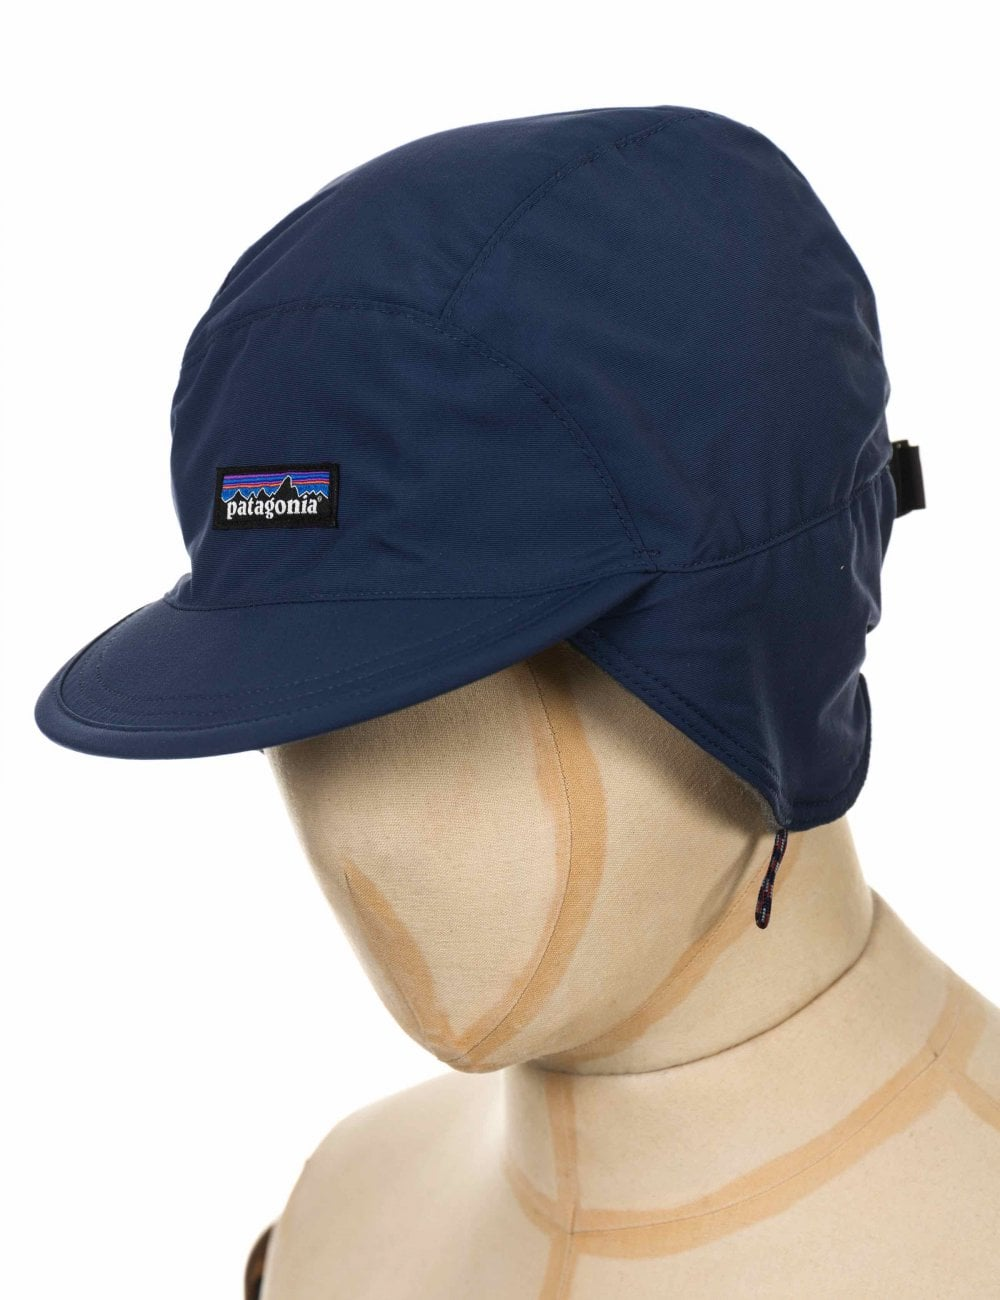 fdc0f80ed1aa0 Patagonia Shelled Synchilla Duckbill Cap - Stone Blue - Accessories ...